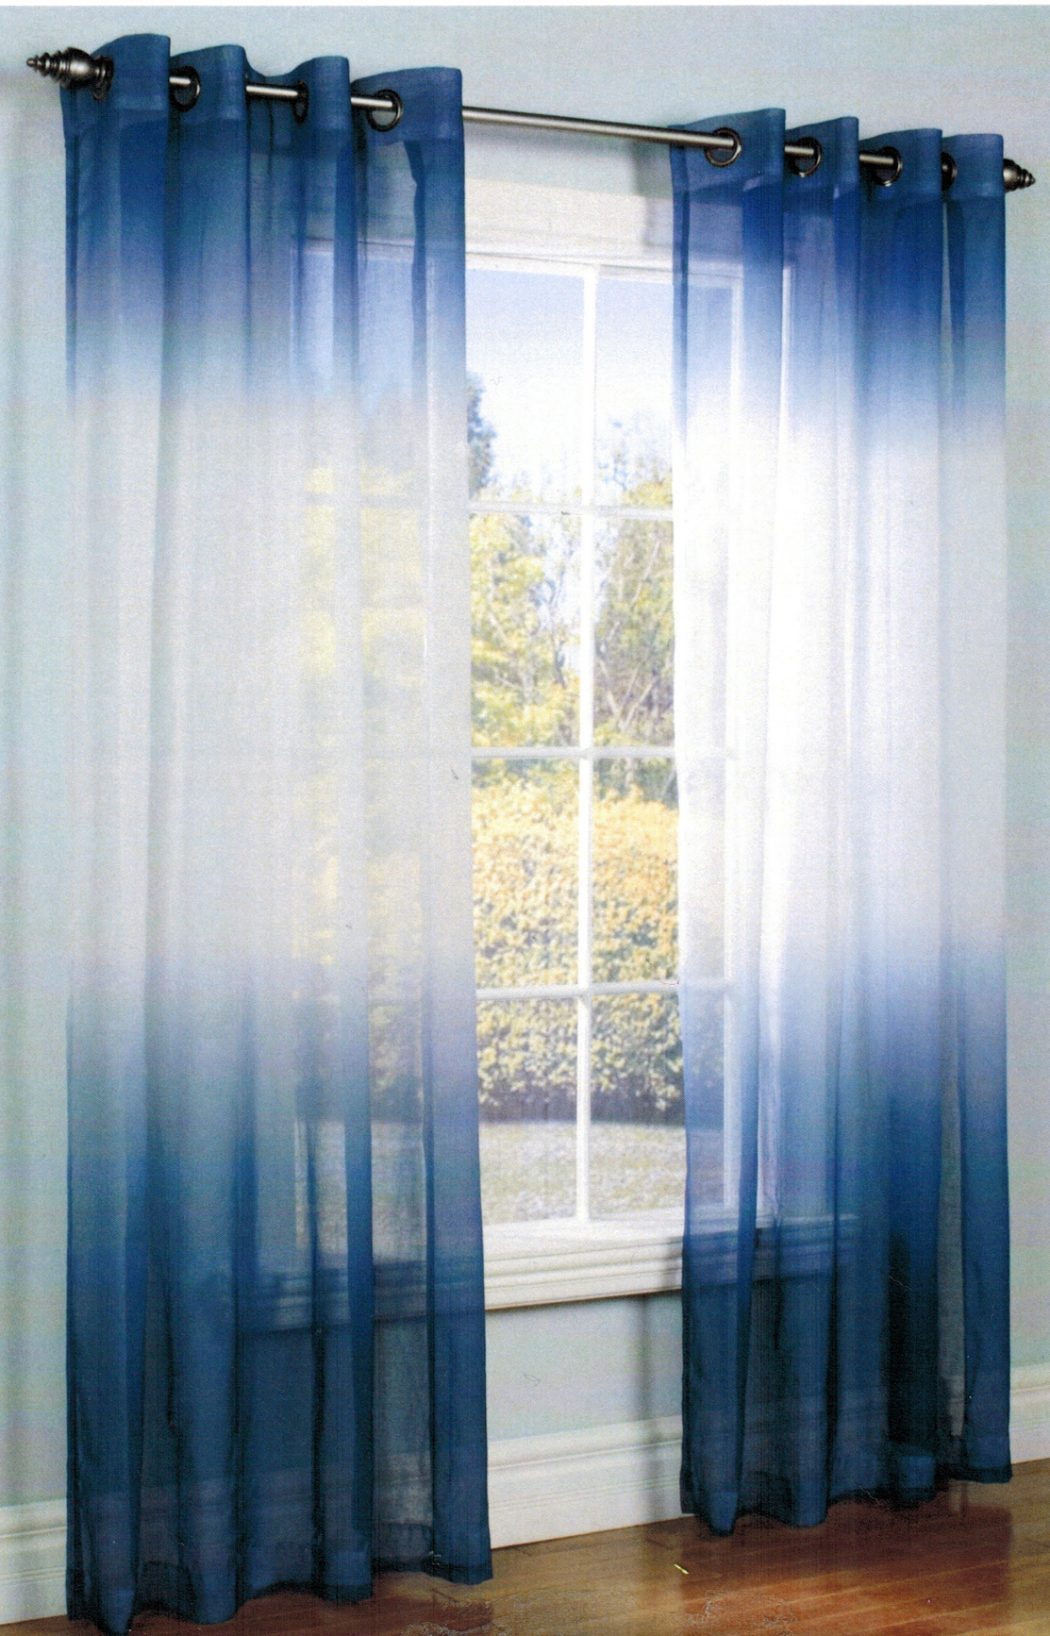 j-ombre-1 20+ Hottest Curtain Design Ideas for 2021